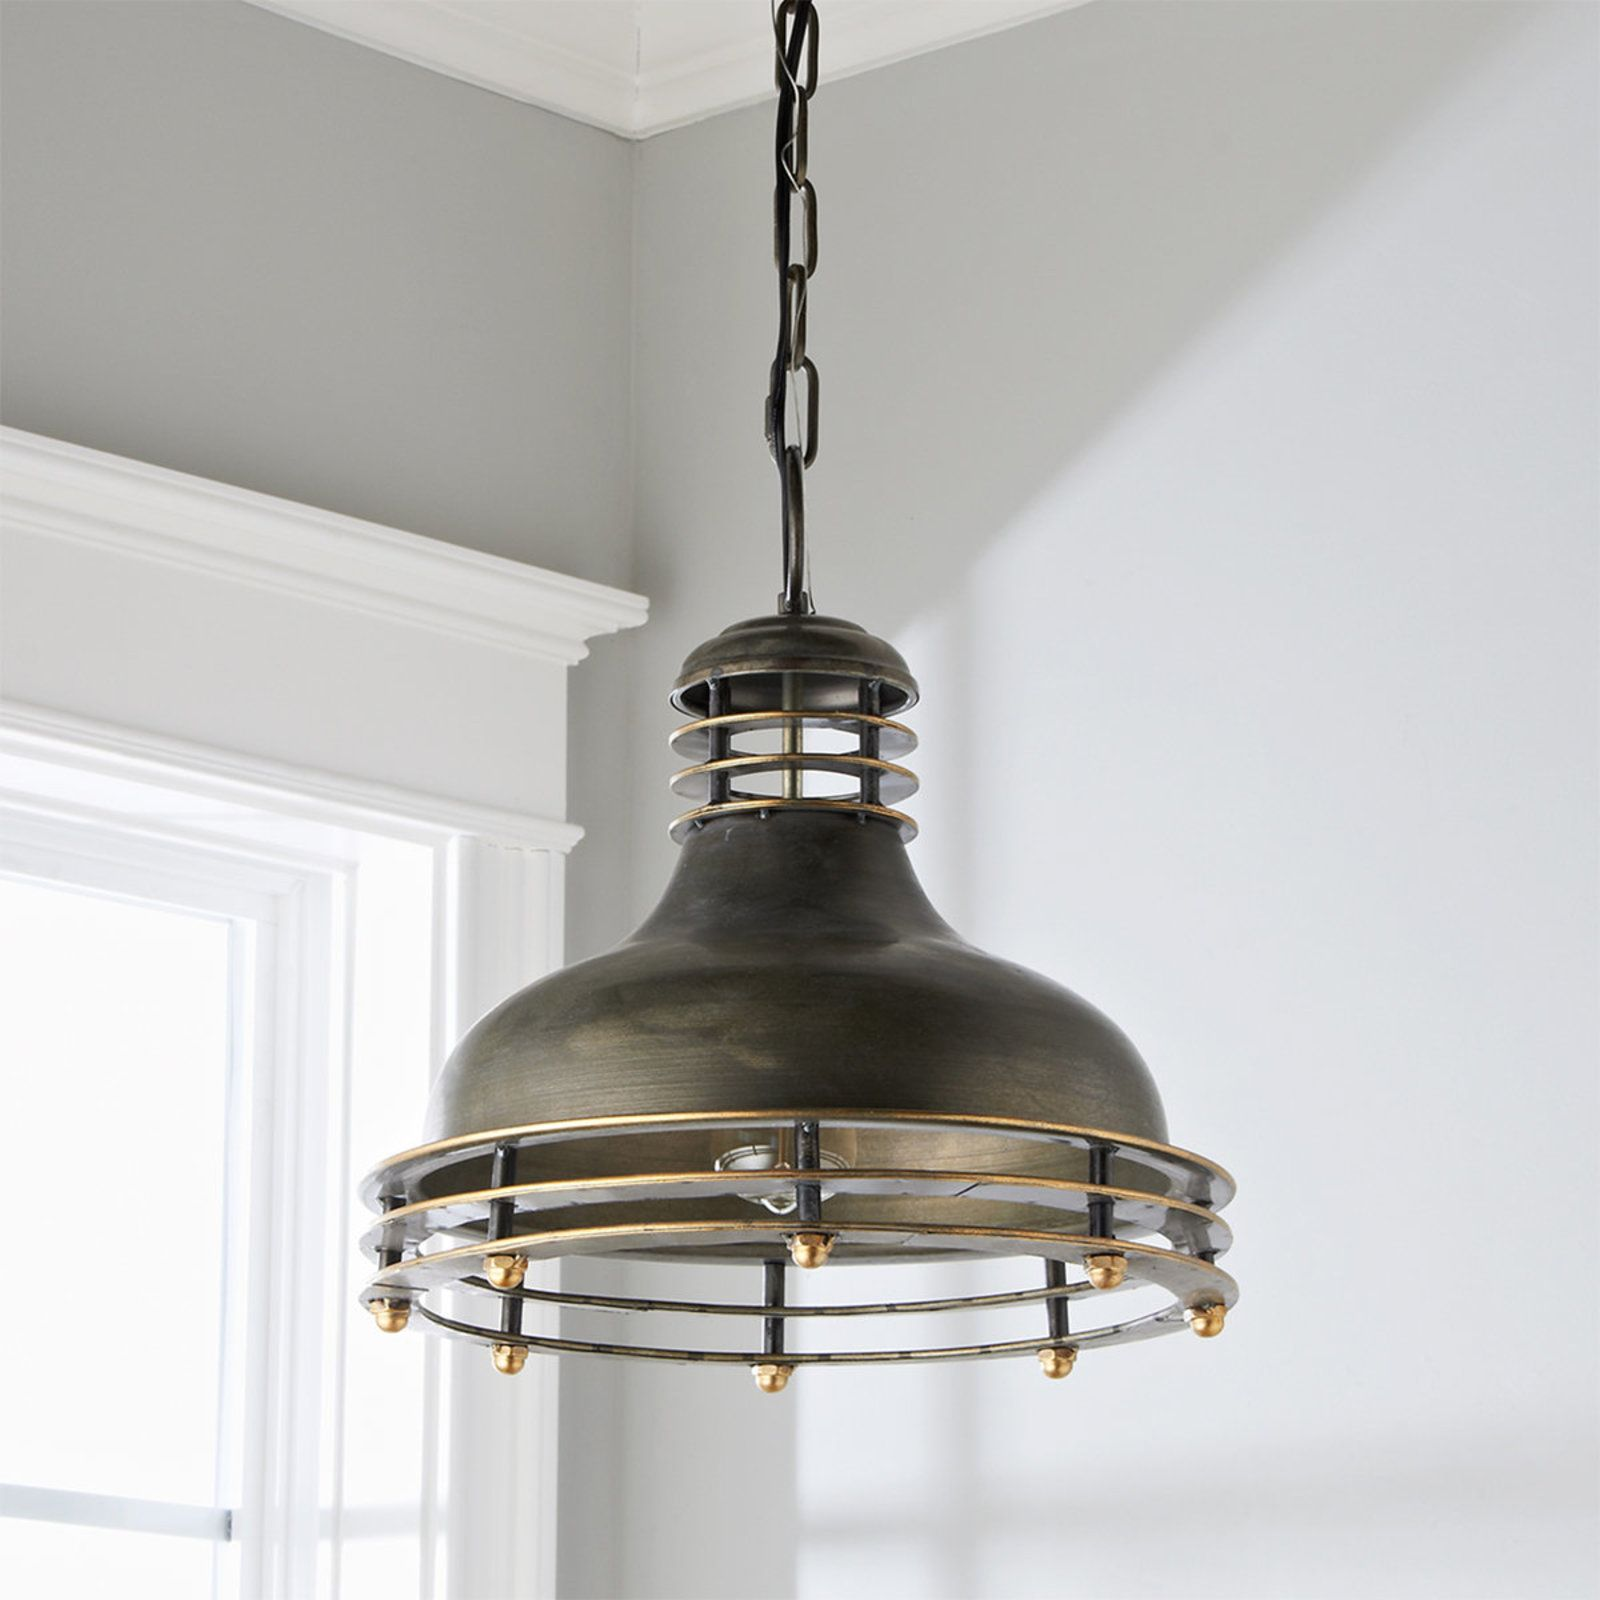 Nautical Ship Light Pendant In 2019 Jlm